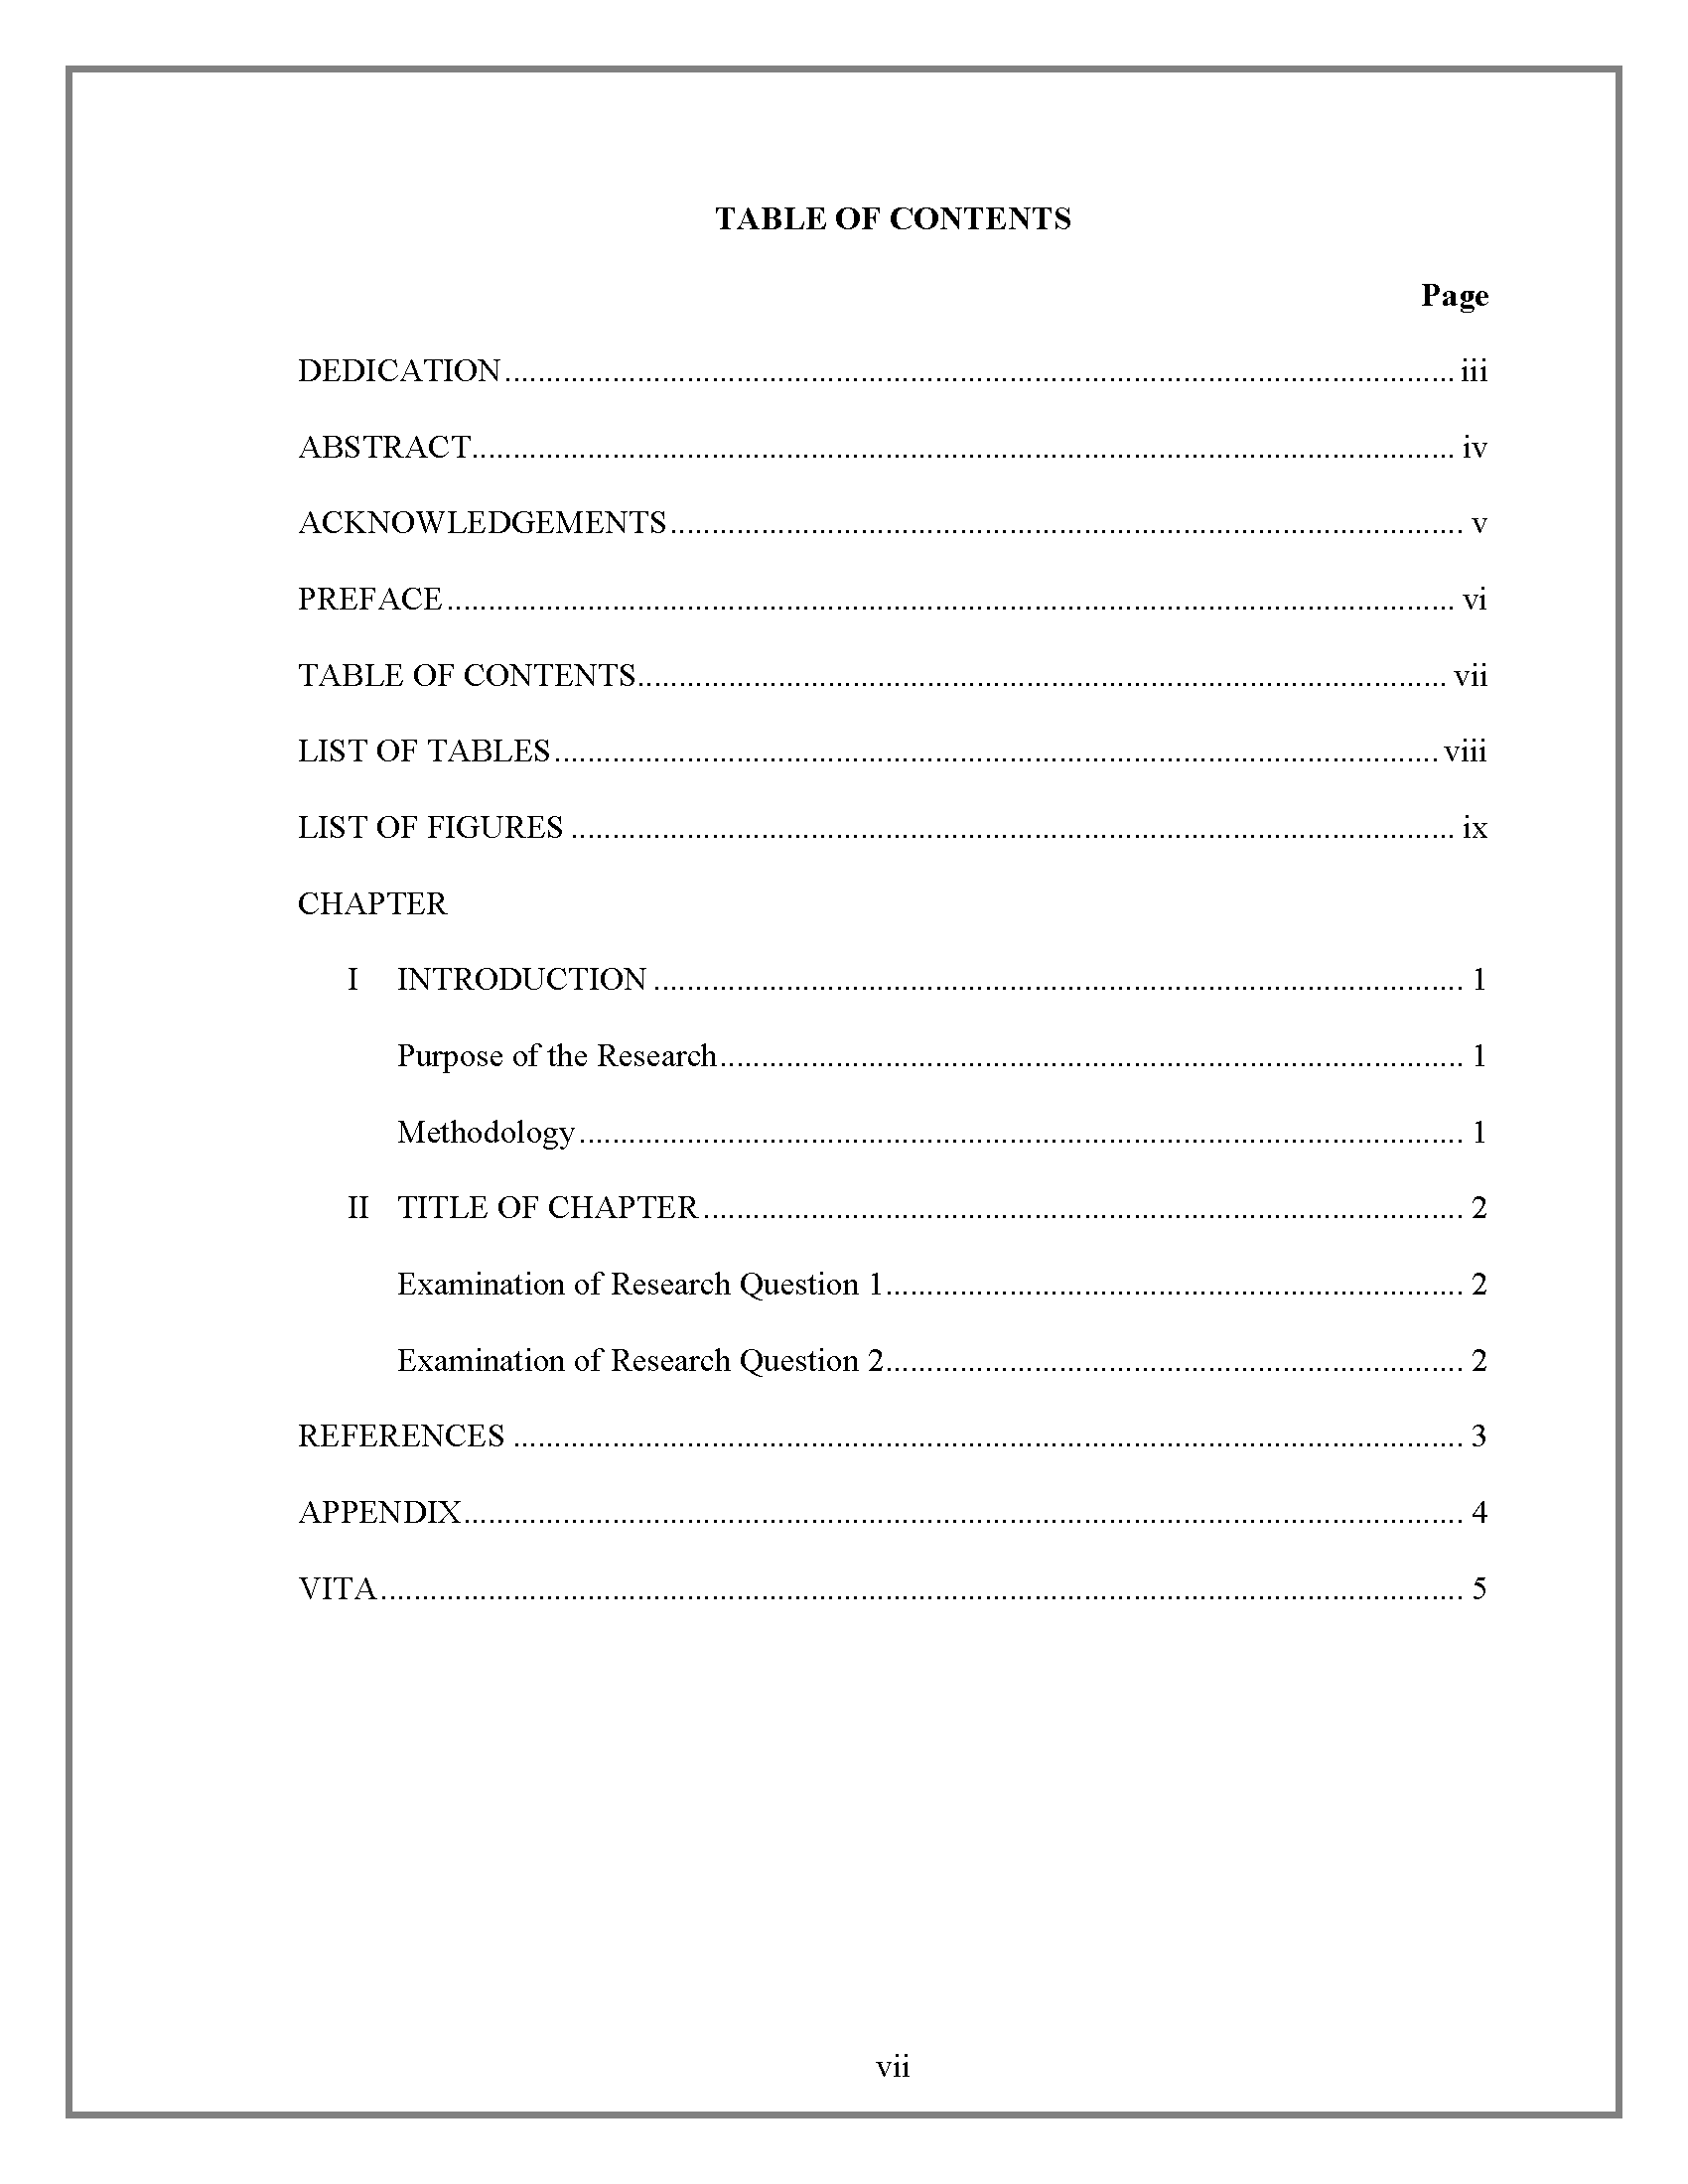 008 Table Ofborder Research Paper Apa Style Sample With Of Remarkable Contents Full